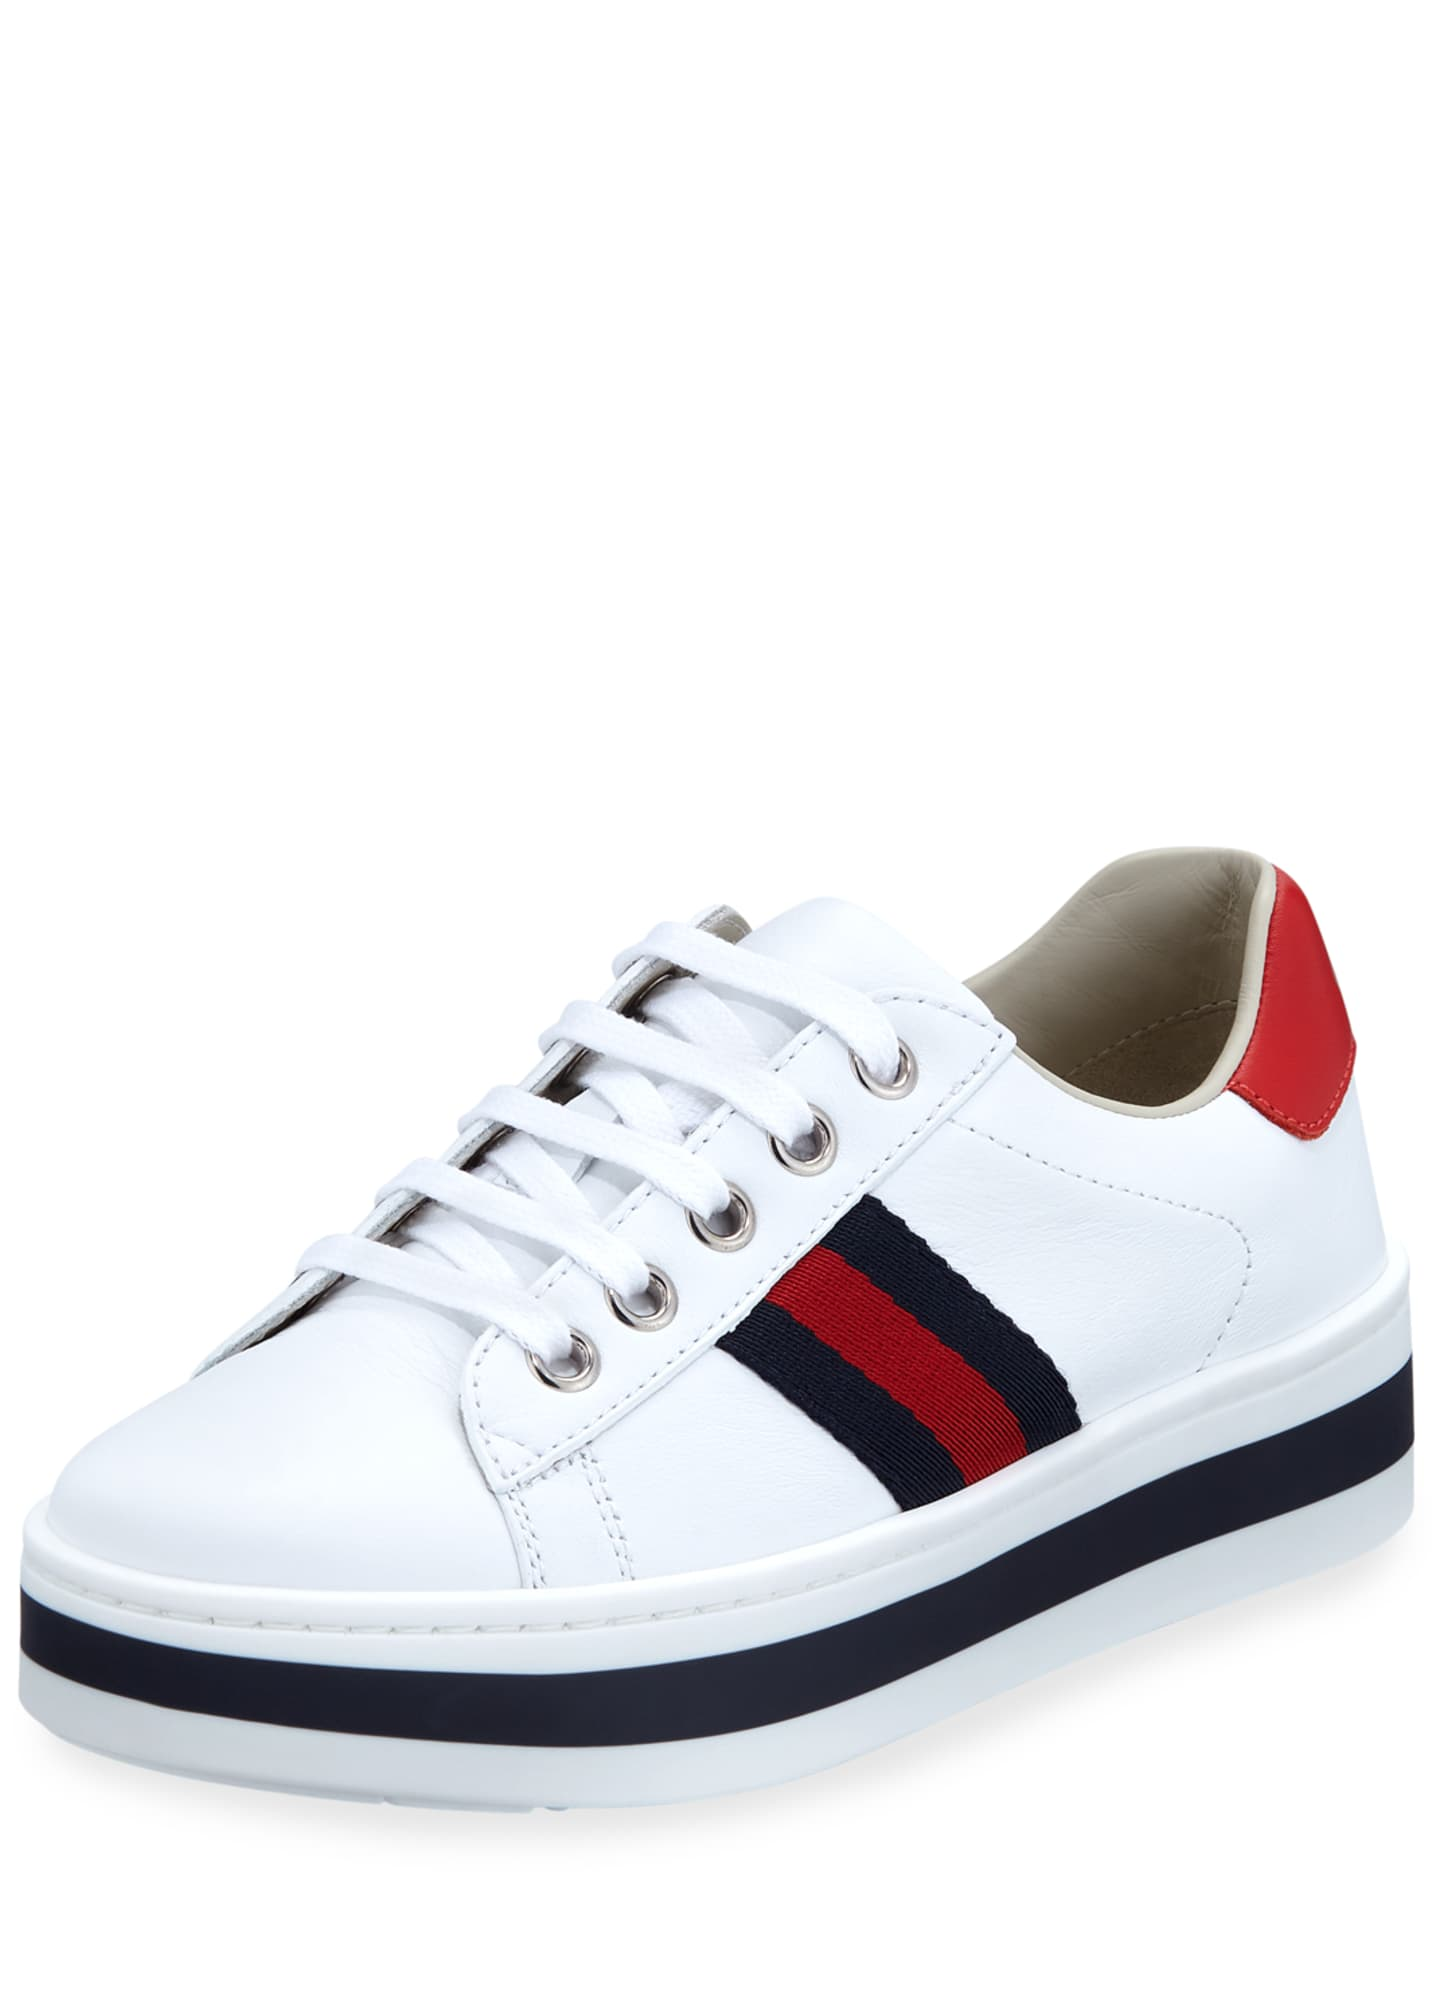 Aceweb new ace web-trim leather platform sneakers, kids